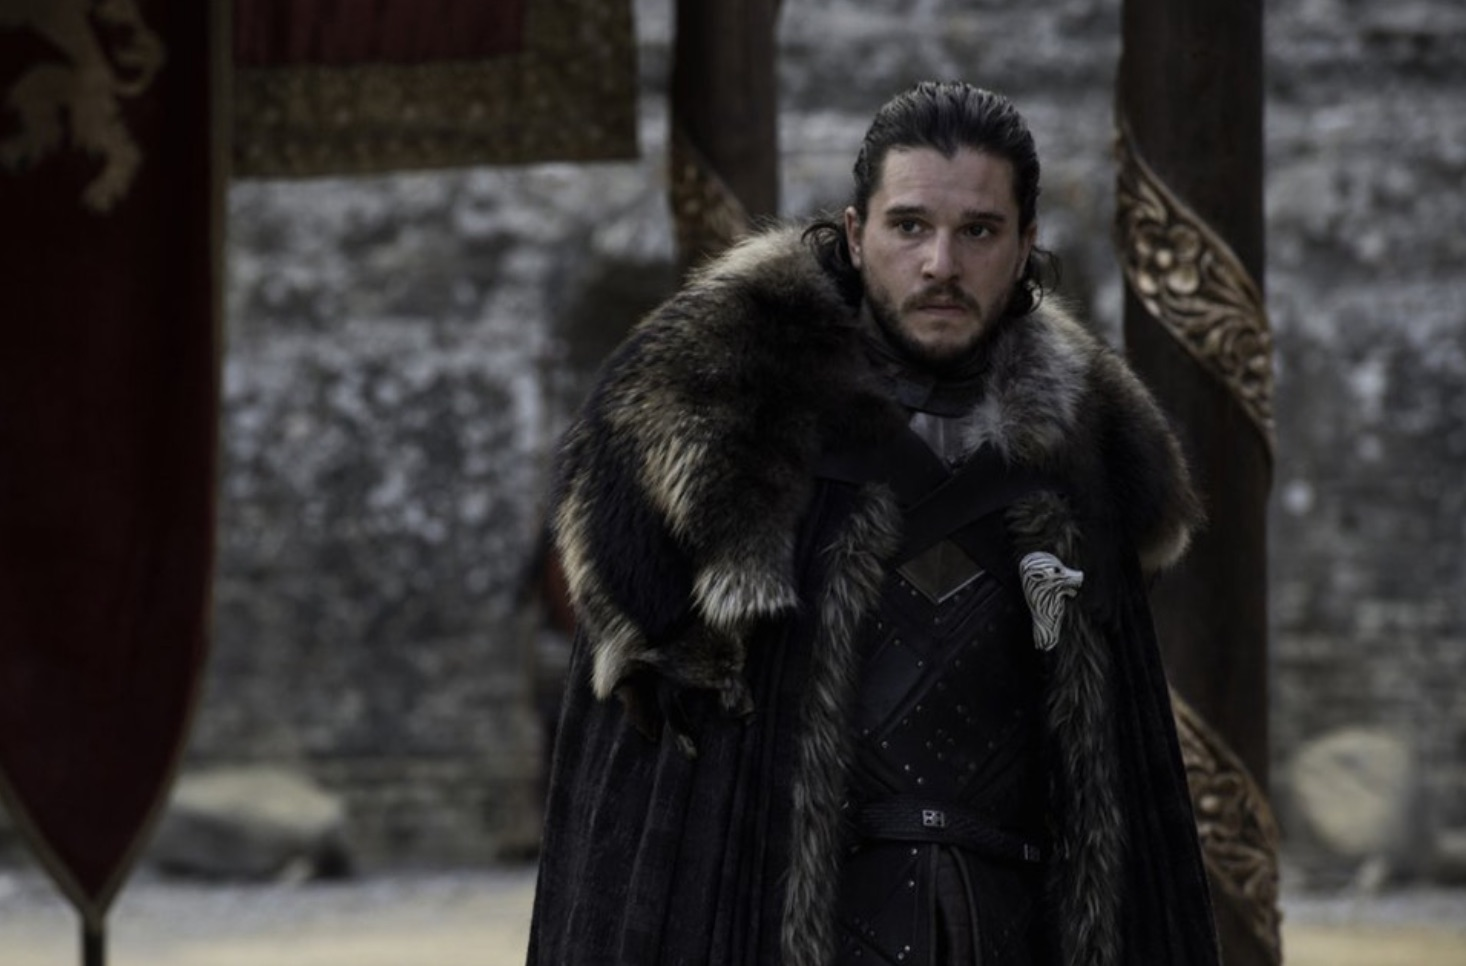 Emilia Clarke distastes 'Jon Snow' revelation in final ep, remarks 'ewwwww'